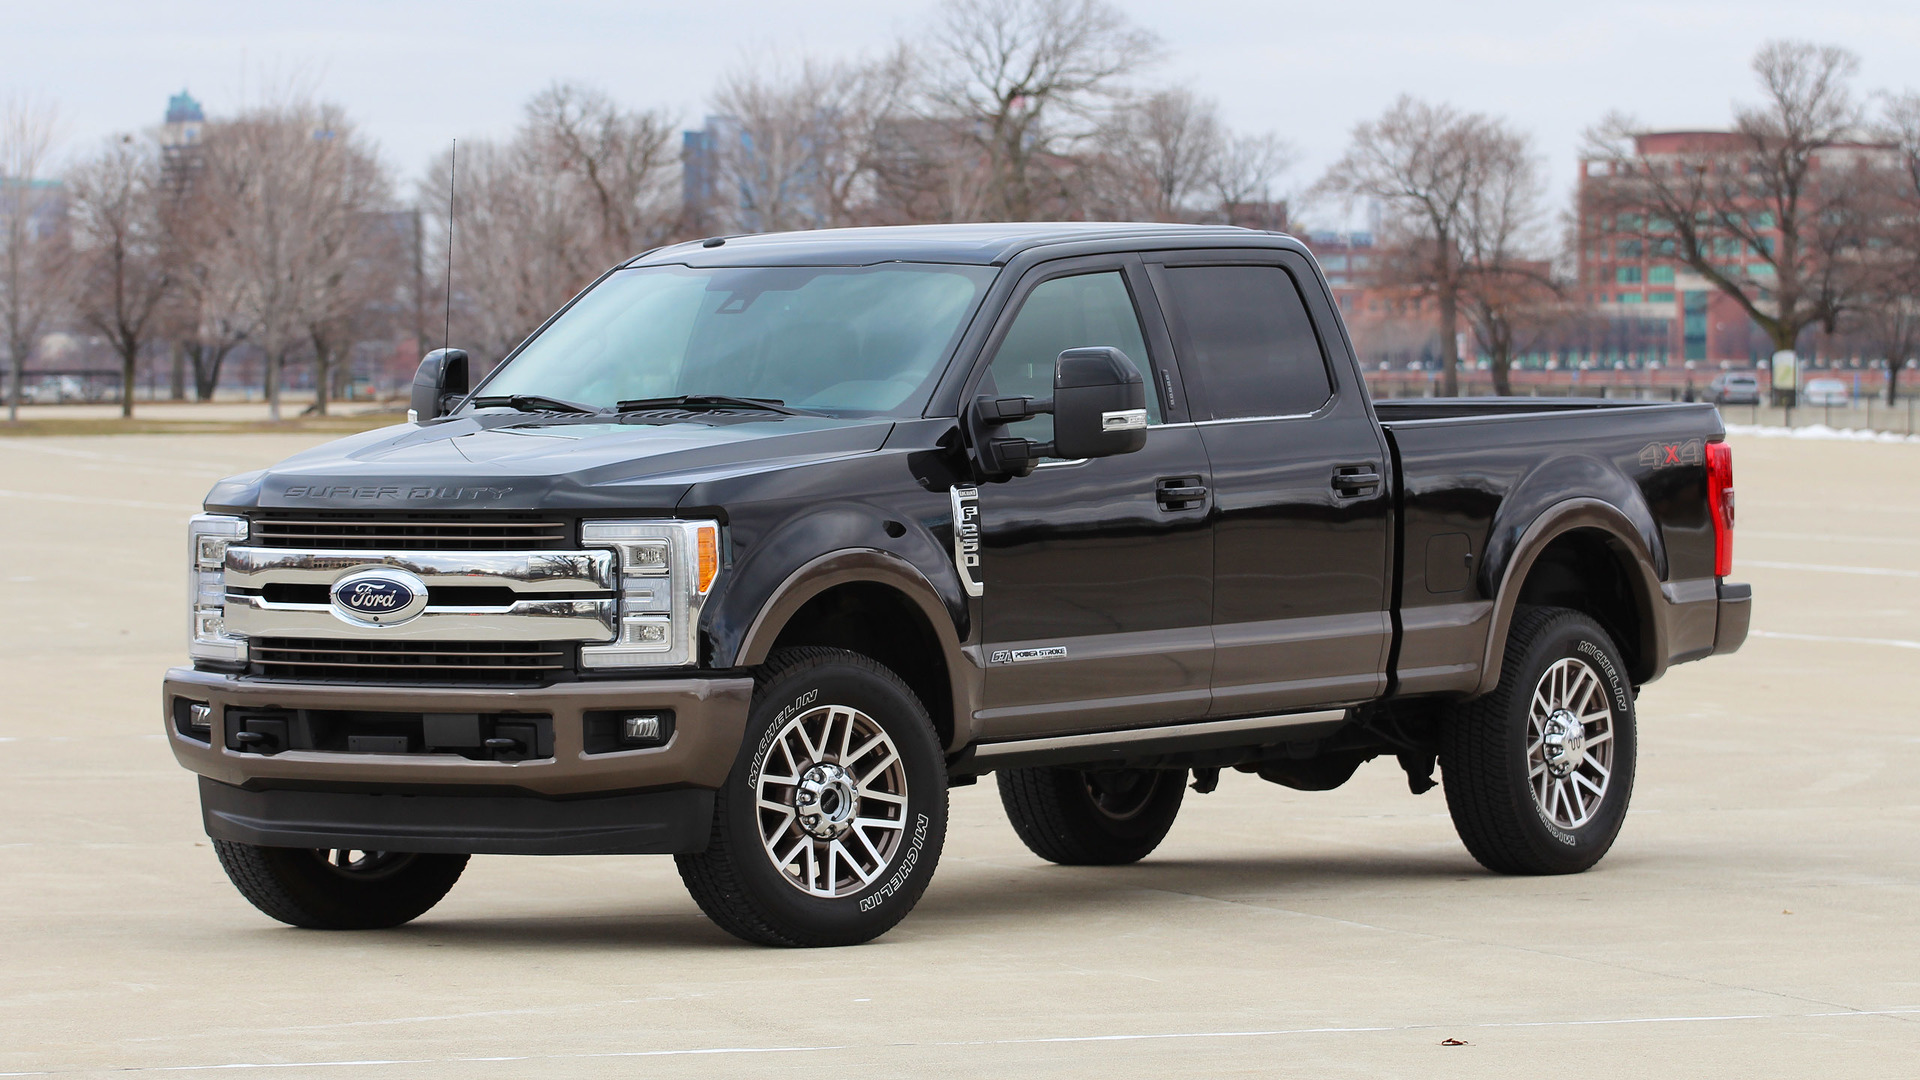 Ford f-250 photo - 8